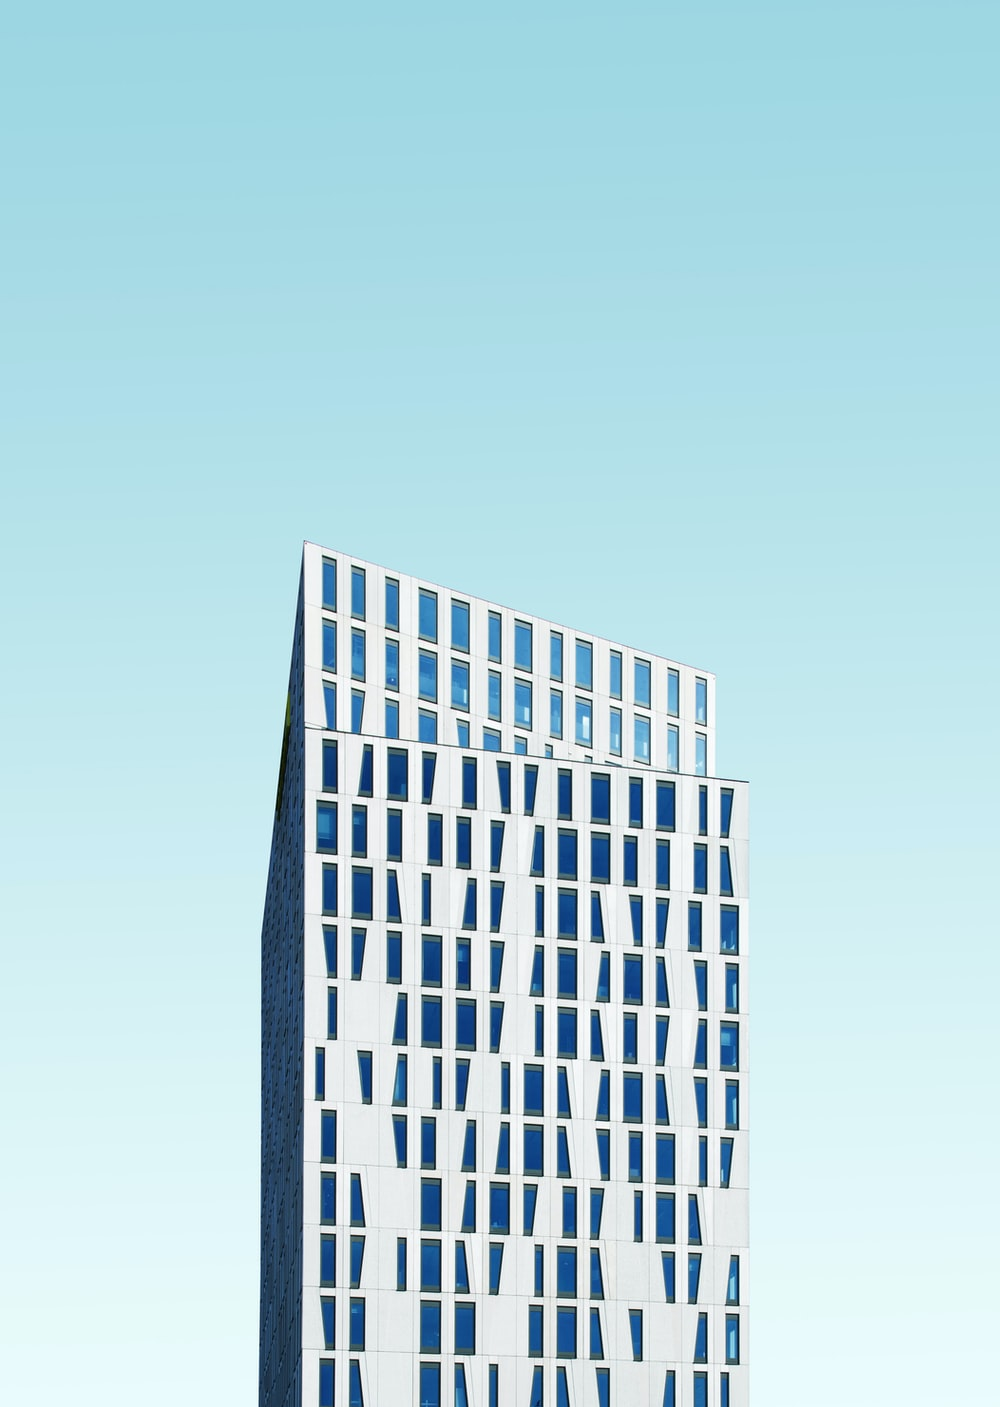 photo of white concrete building under blue sky at daytime